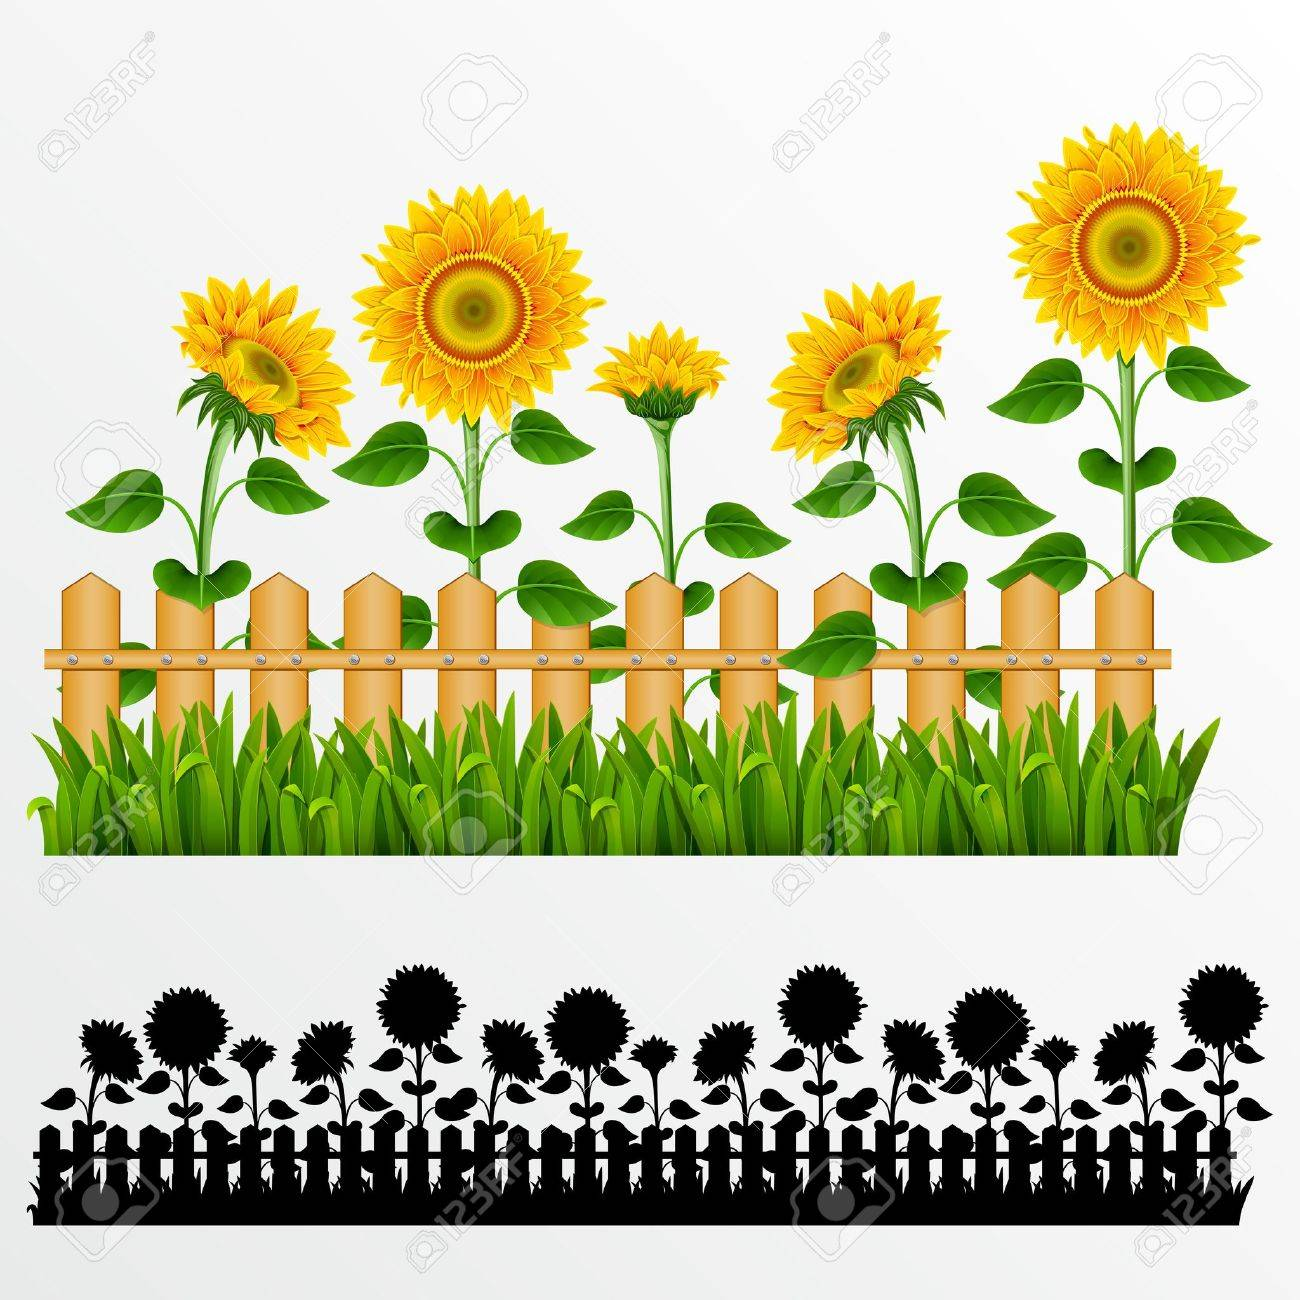 Border with sunflowers and fence.(can be repeated and scaled in any size) - 9828102